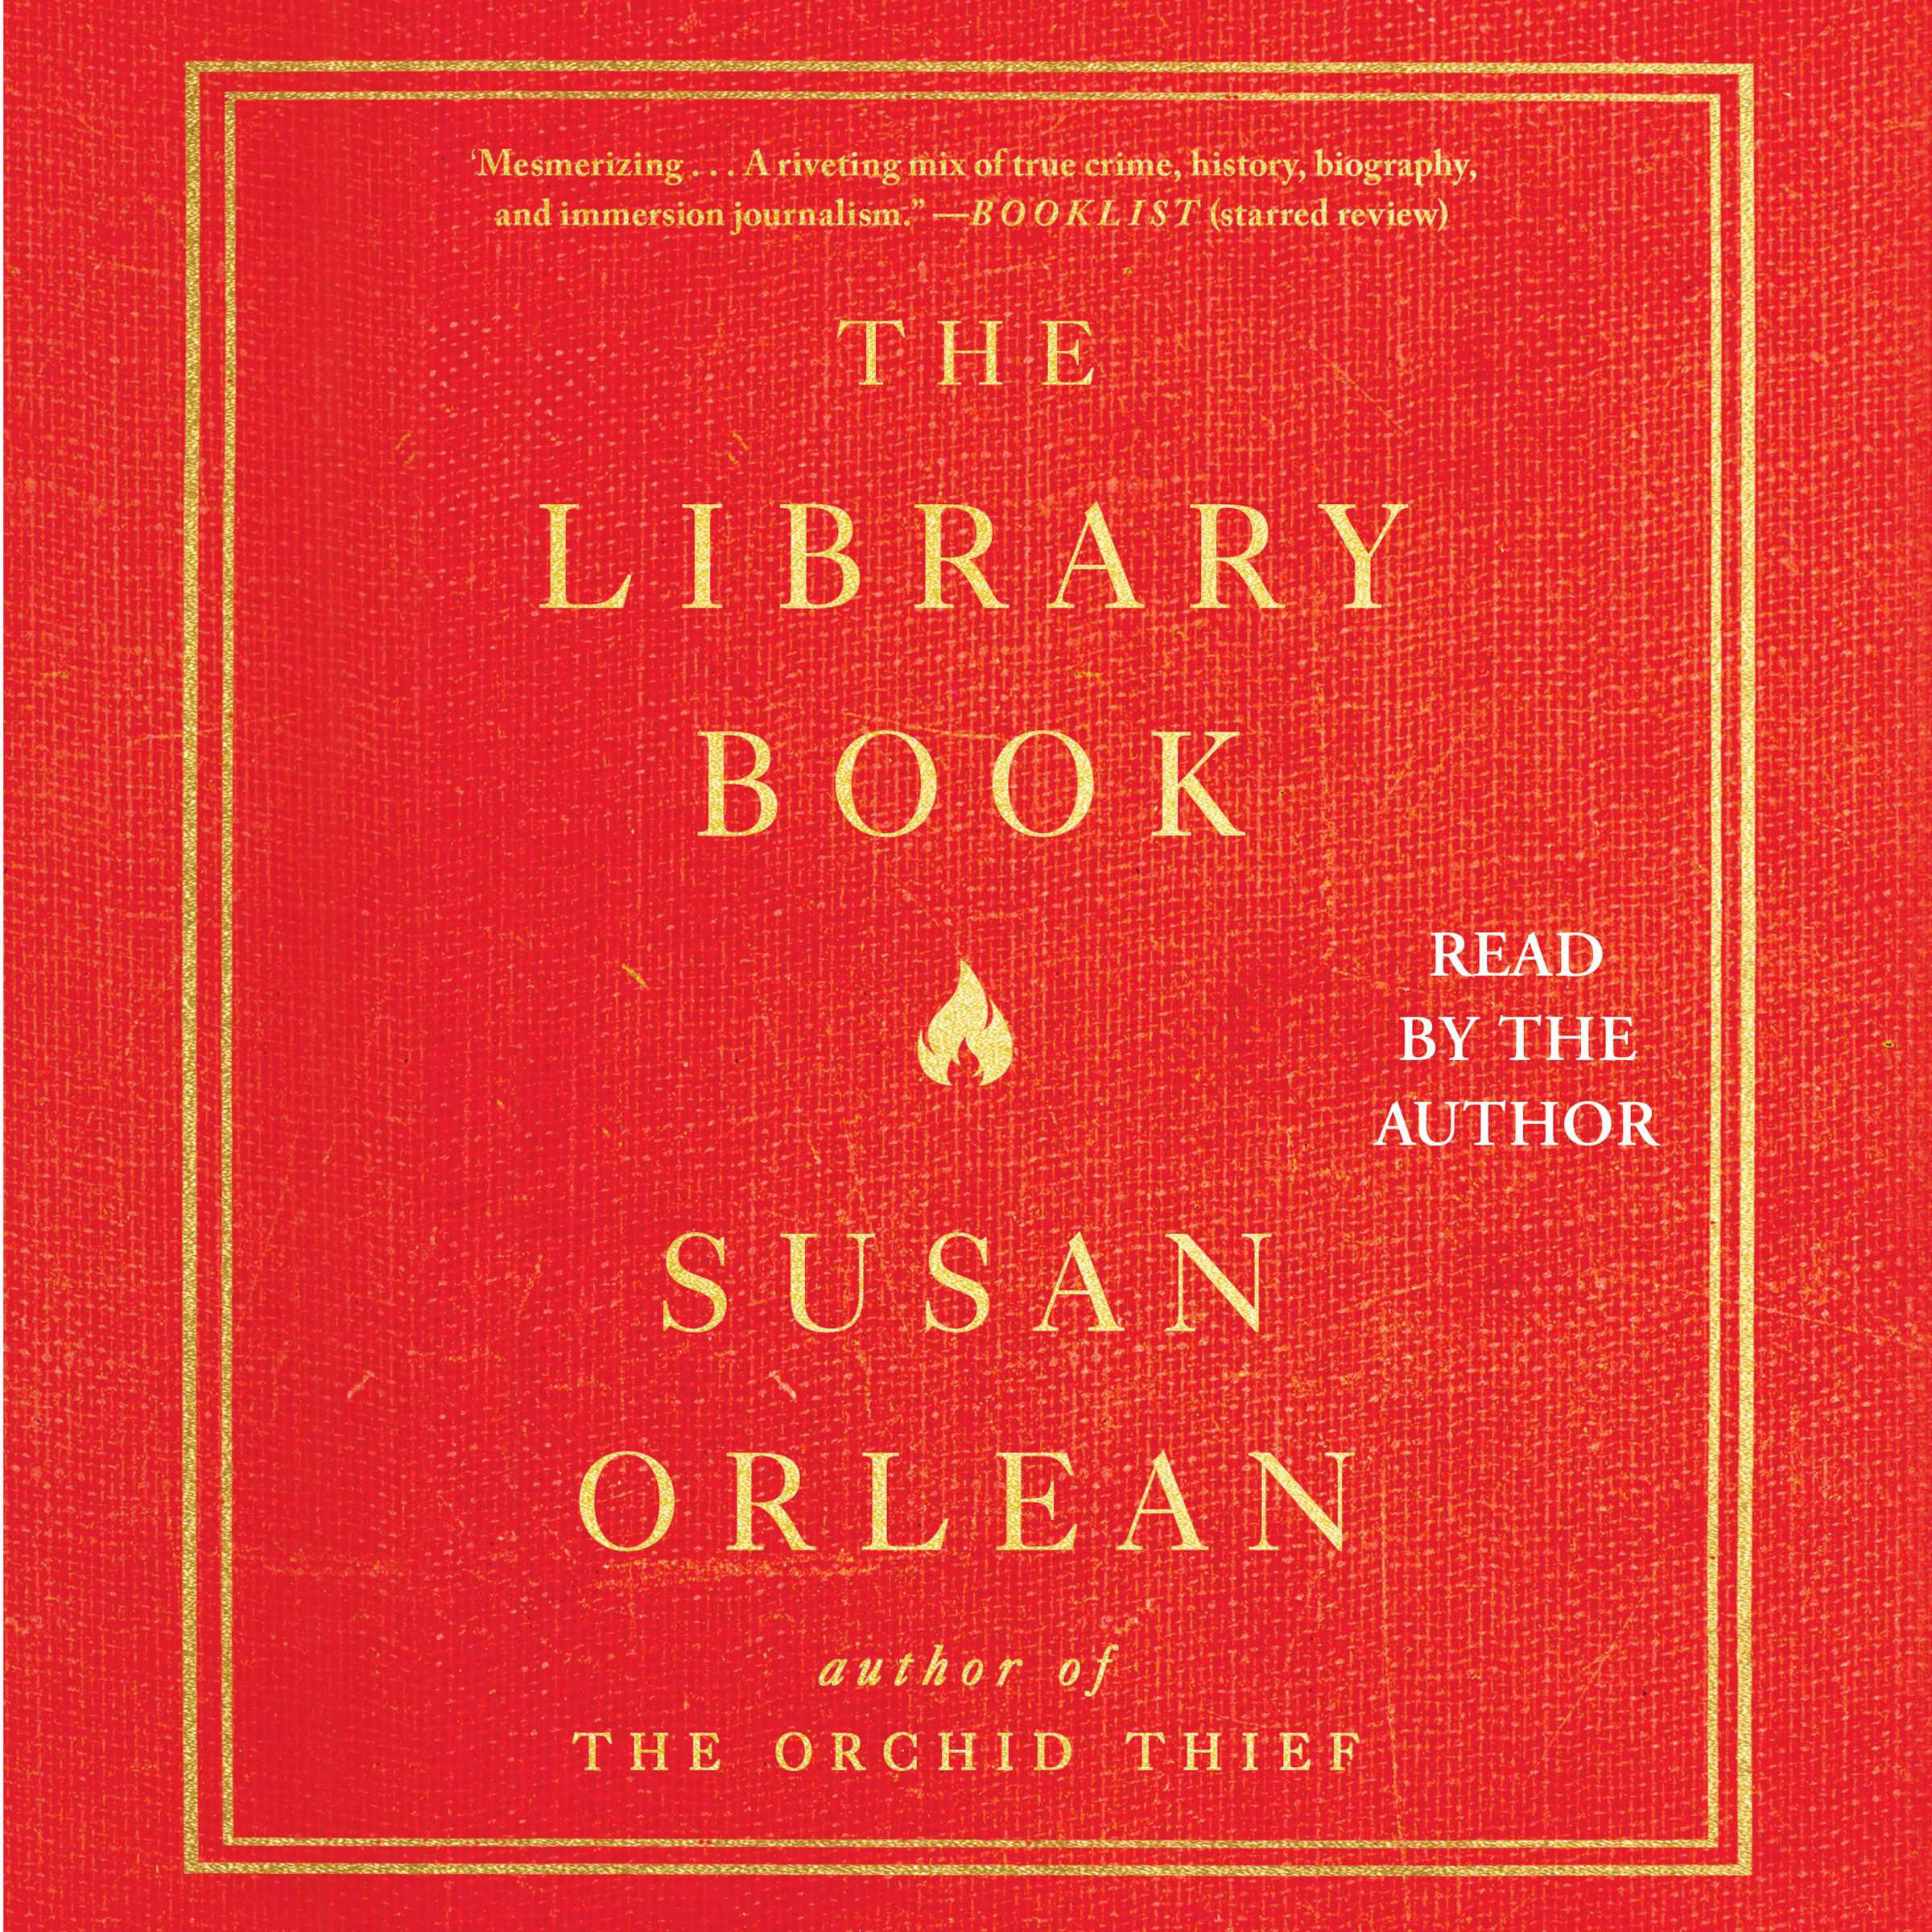 The Library Book.